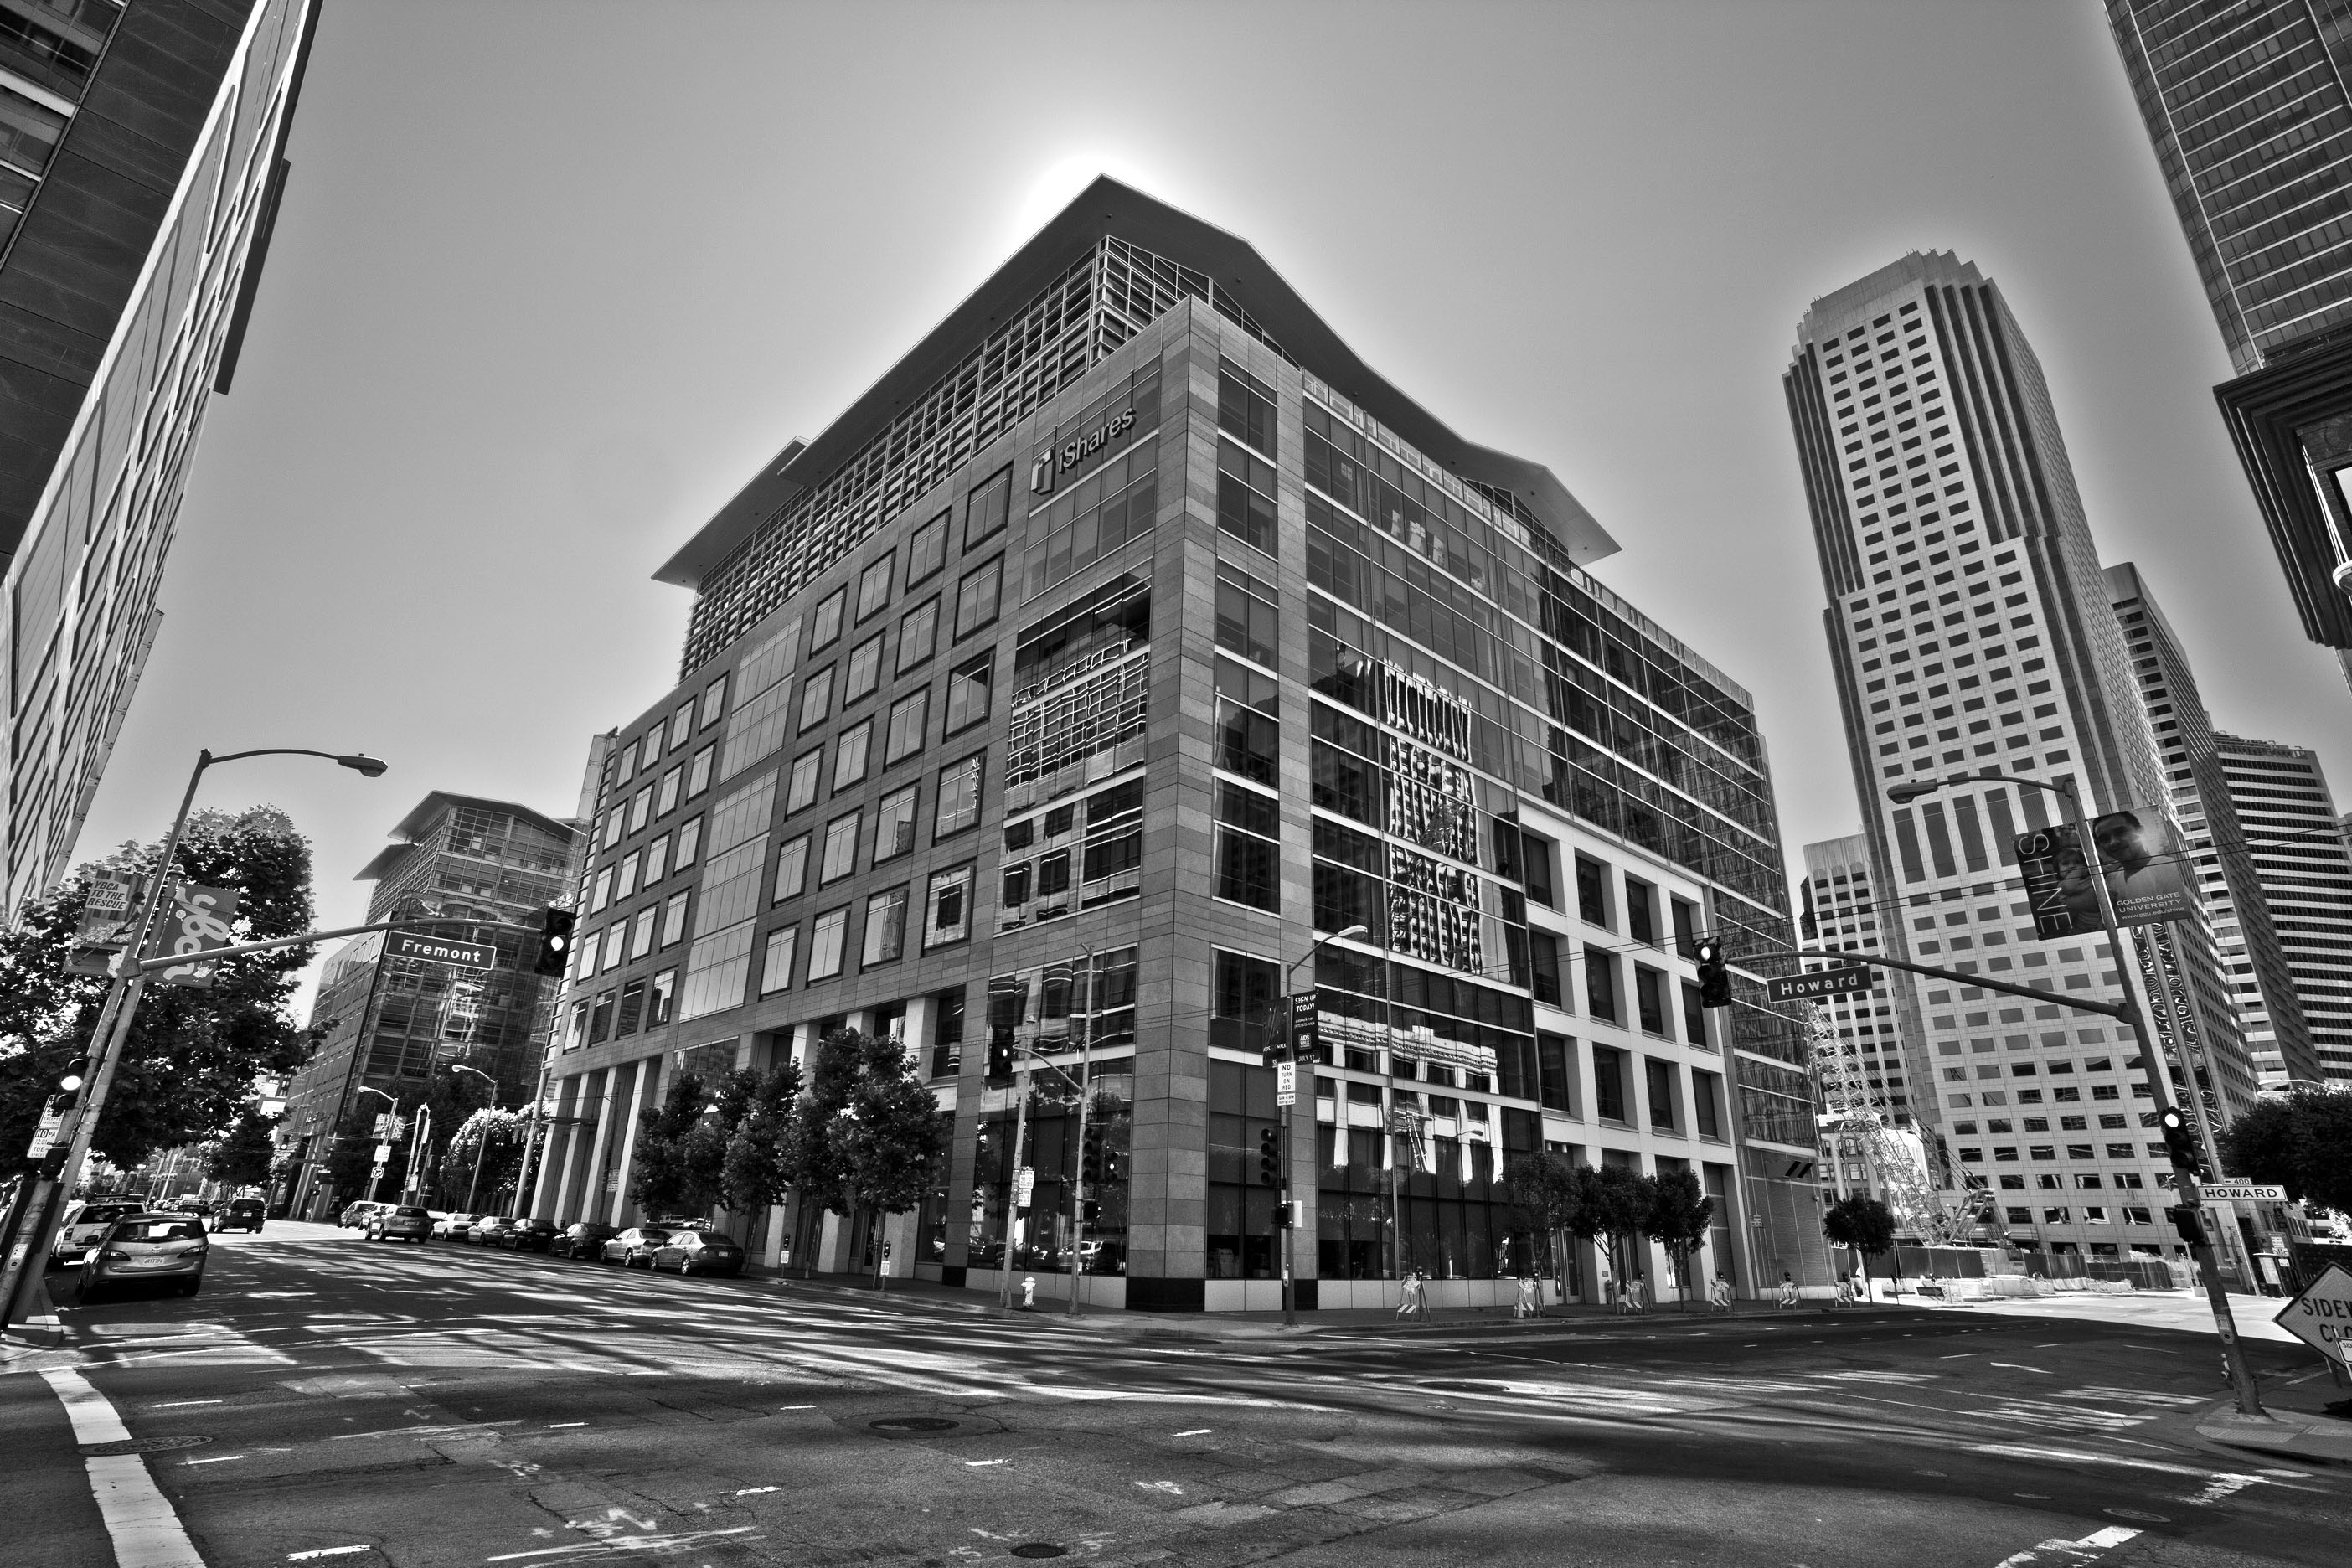 Architecture iStock Bldg cnr Howard and Fremont St San Francisco CA July 2011 04